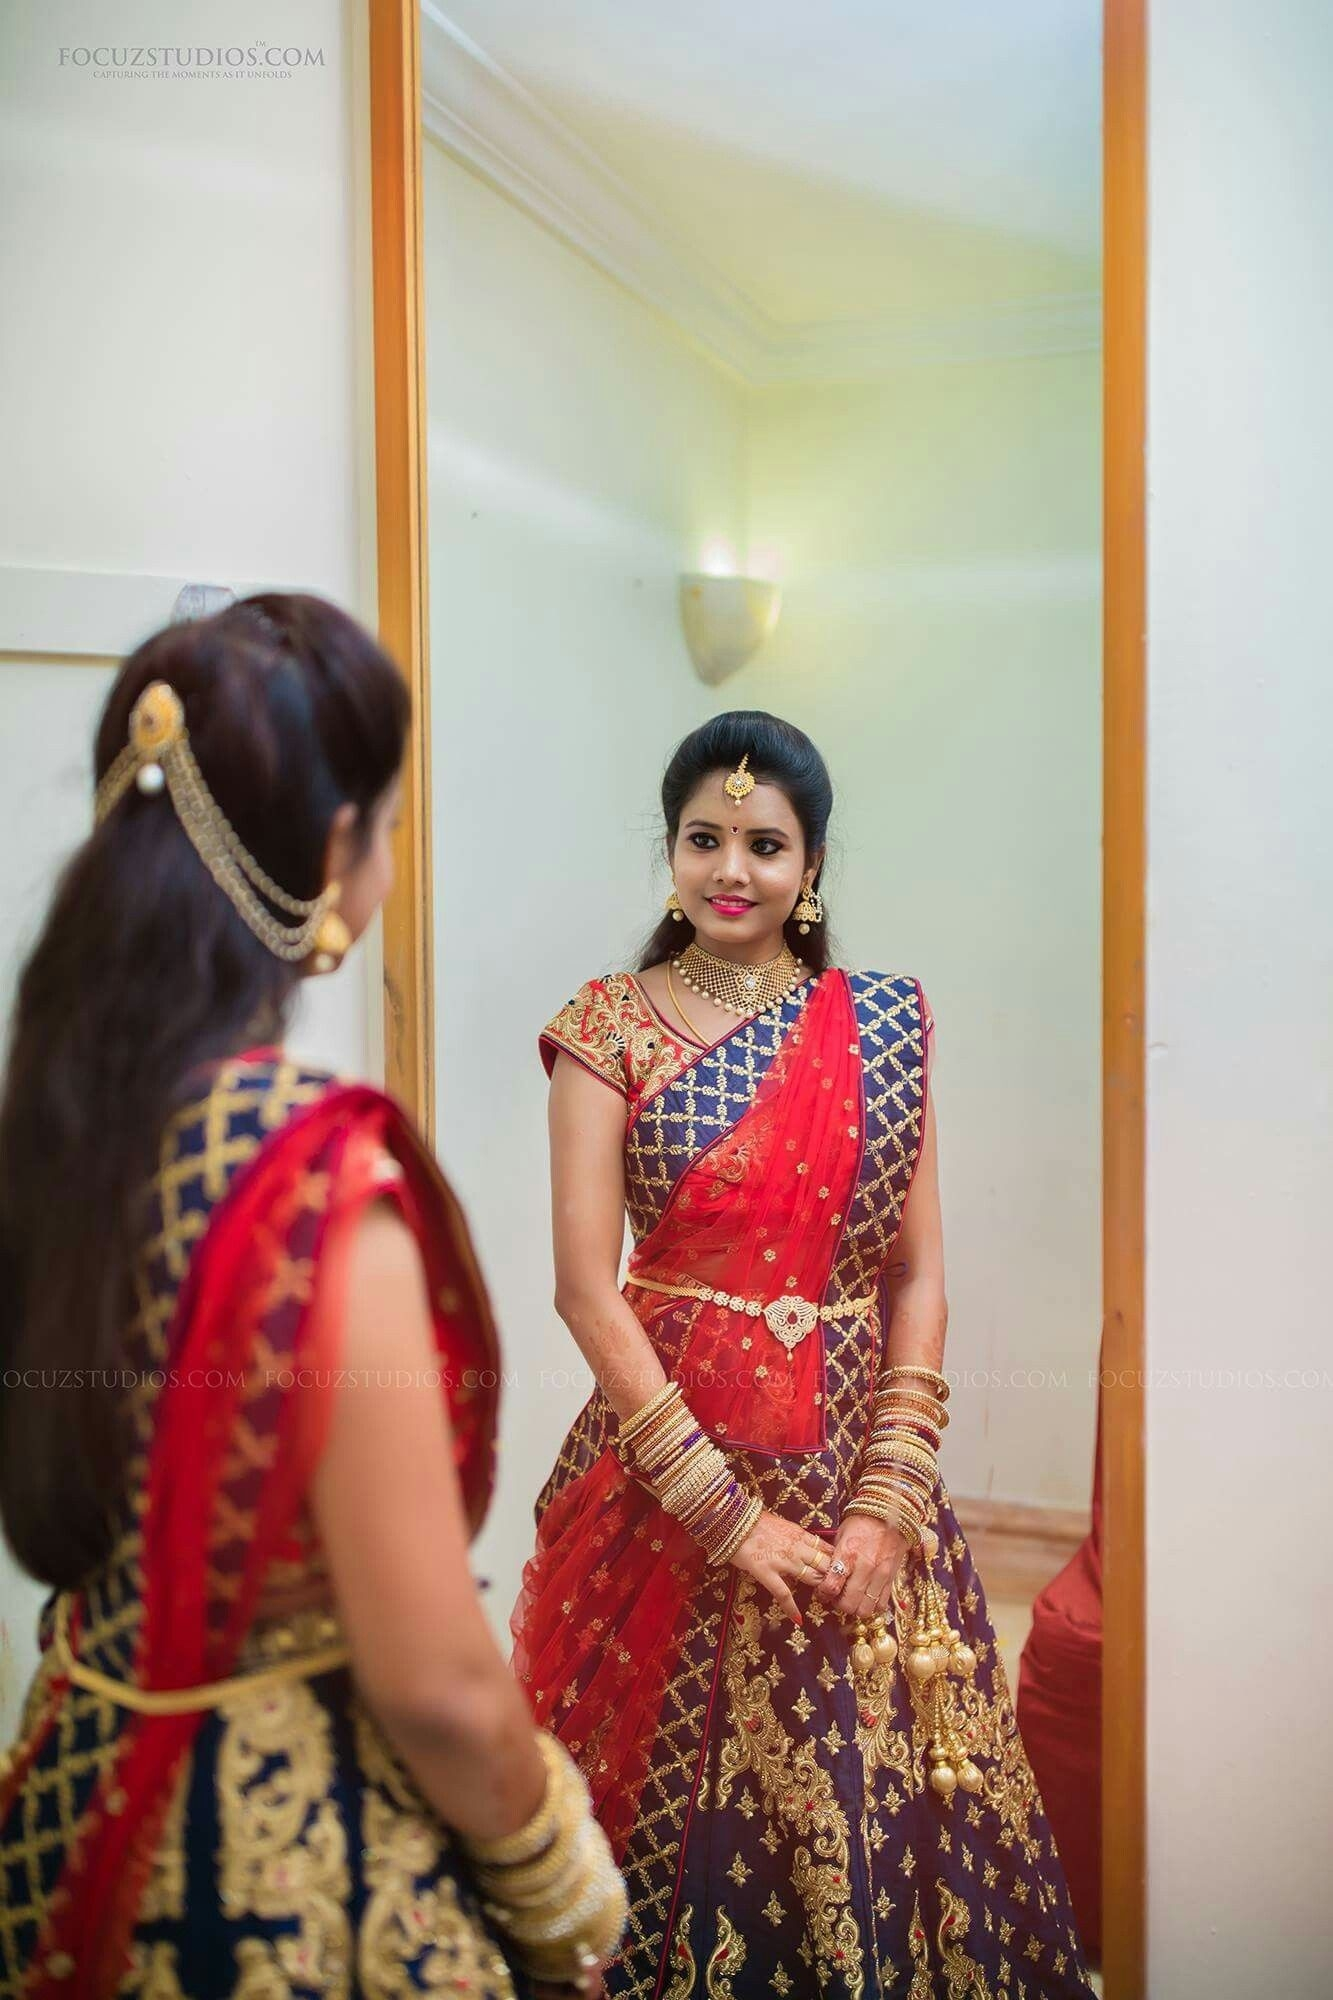 Hair Style | Hairstyles | Indian Bridal Hairstyles, South Indian inside Indian Wedding Reception Hairstyles For Medium Hair